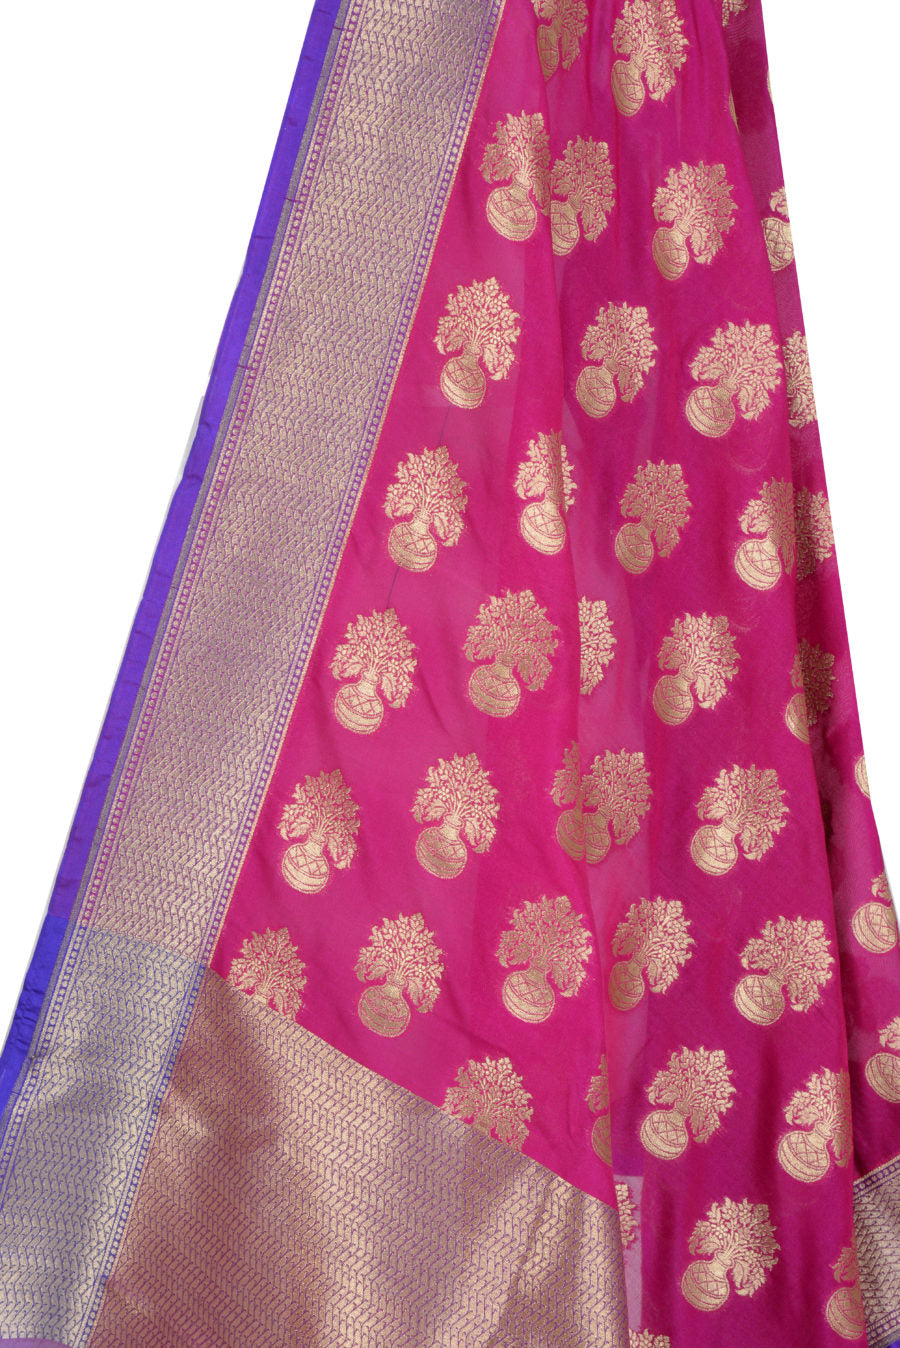 Pink Banarasi Dupatta with flower inside vase motifs (2) Closeup